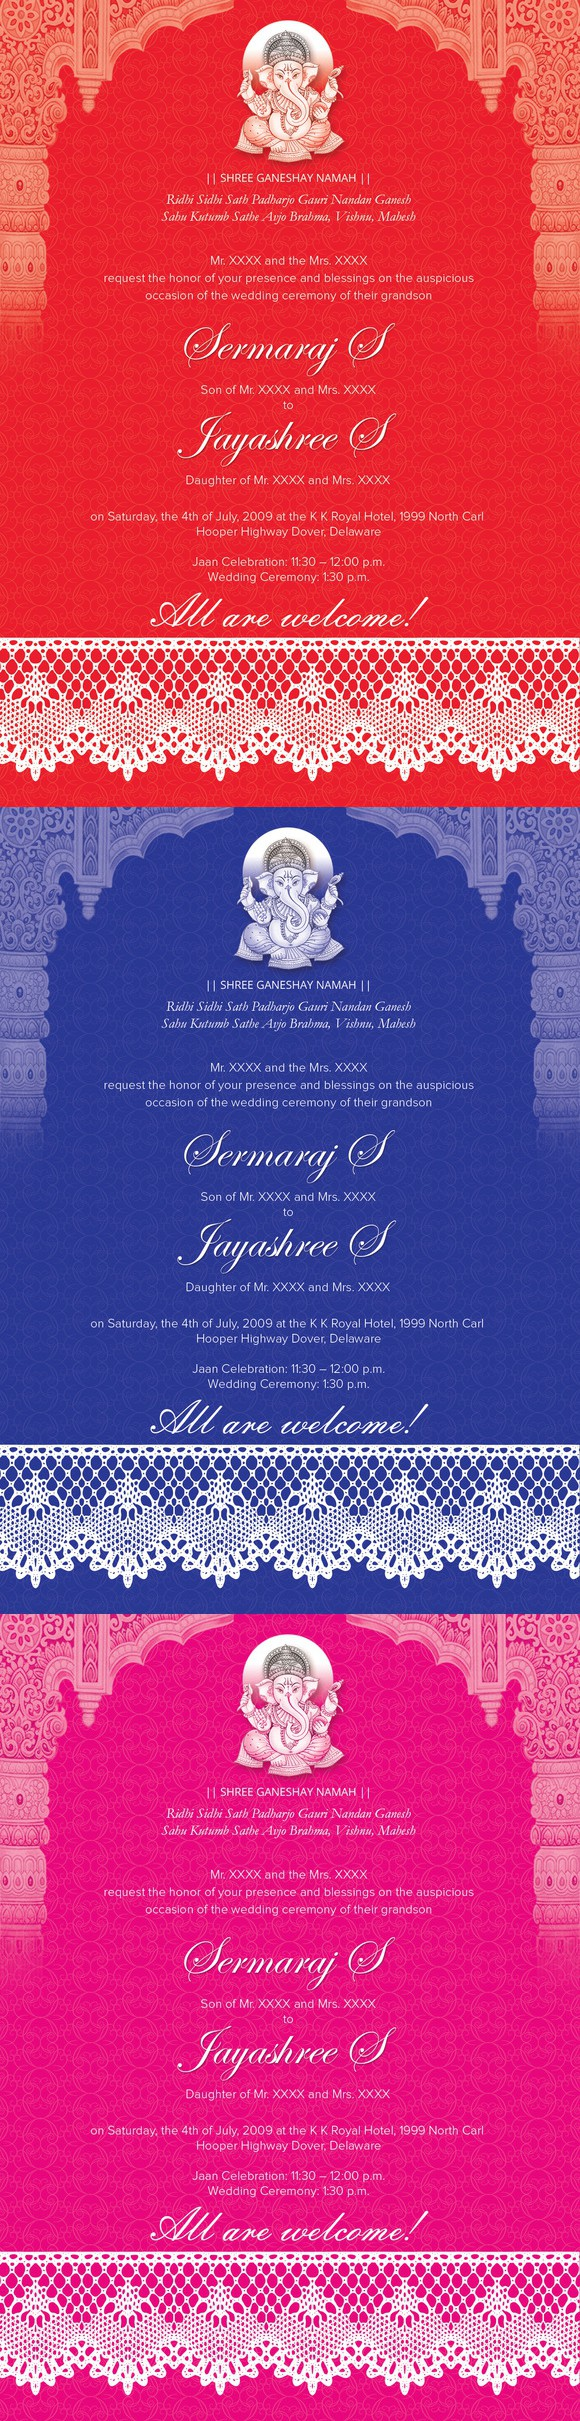 Indian Wedding Card 01 3 Colors Wedding Fonts 10 00 Wedding